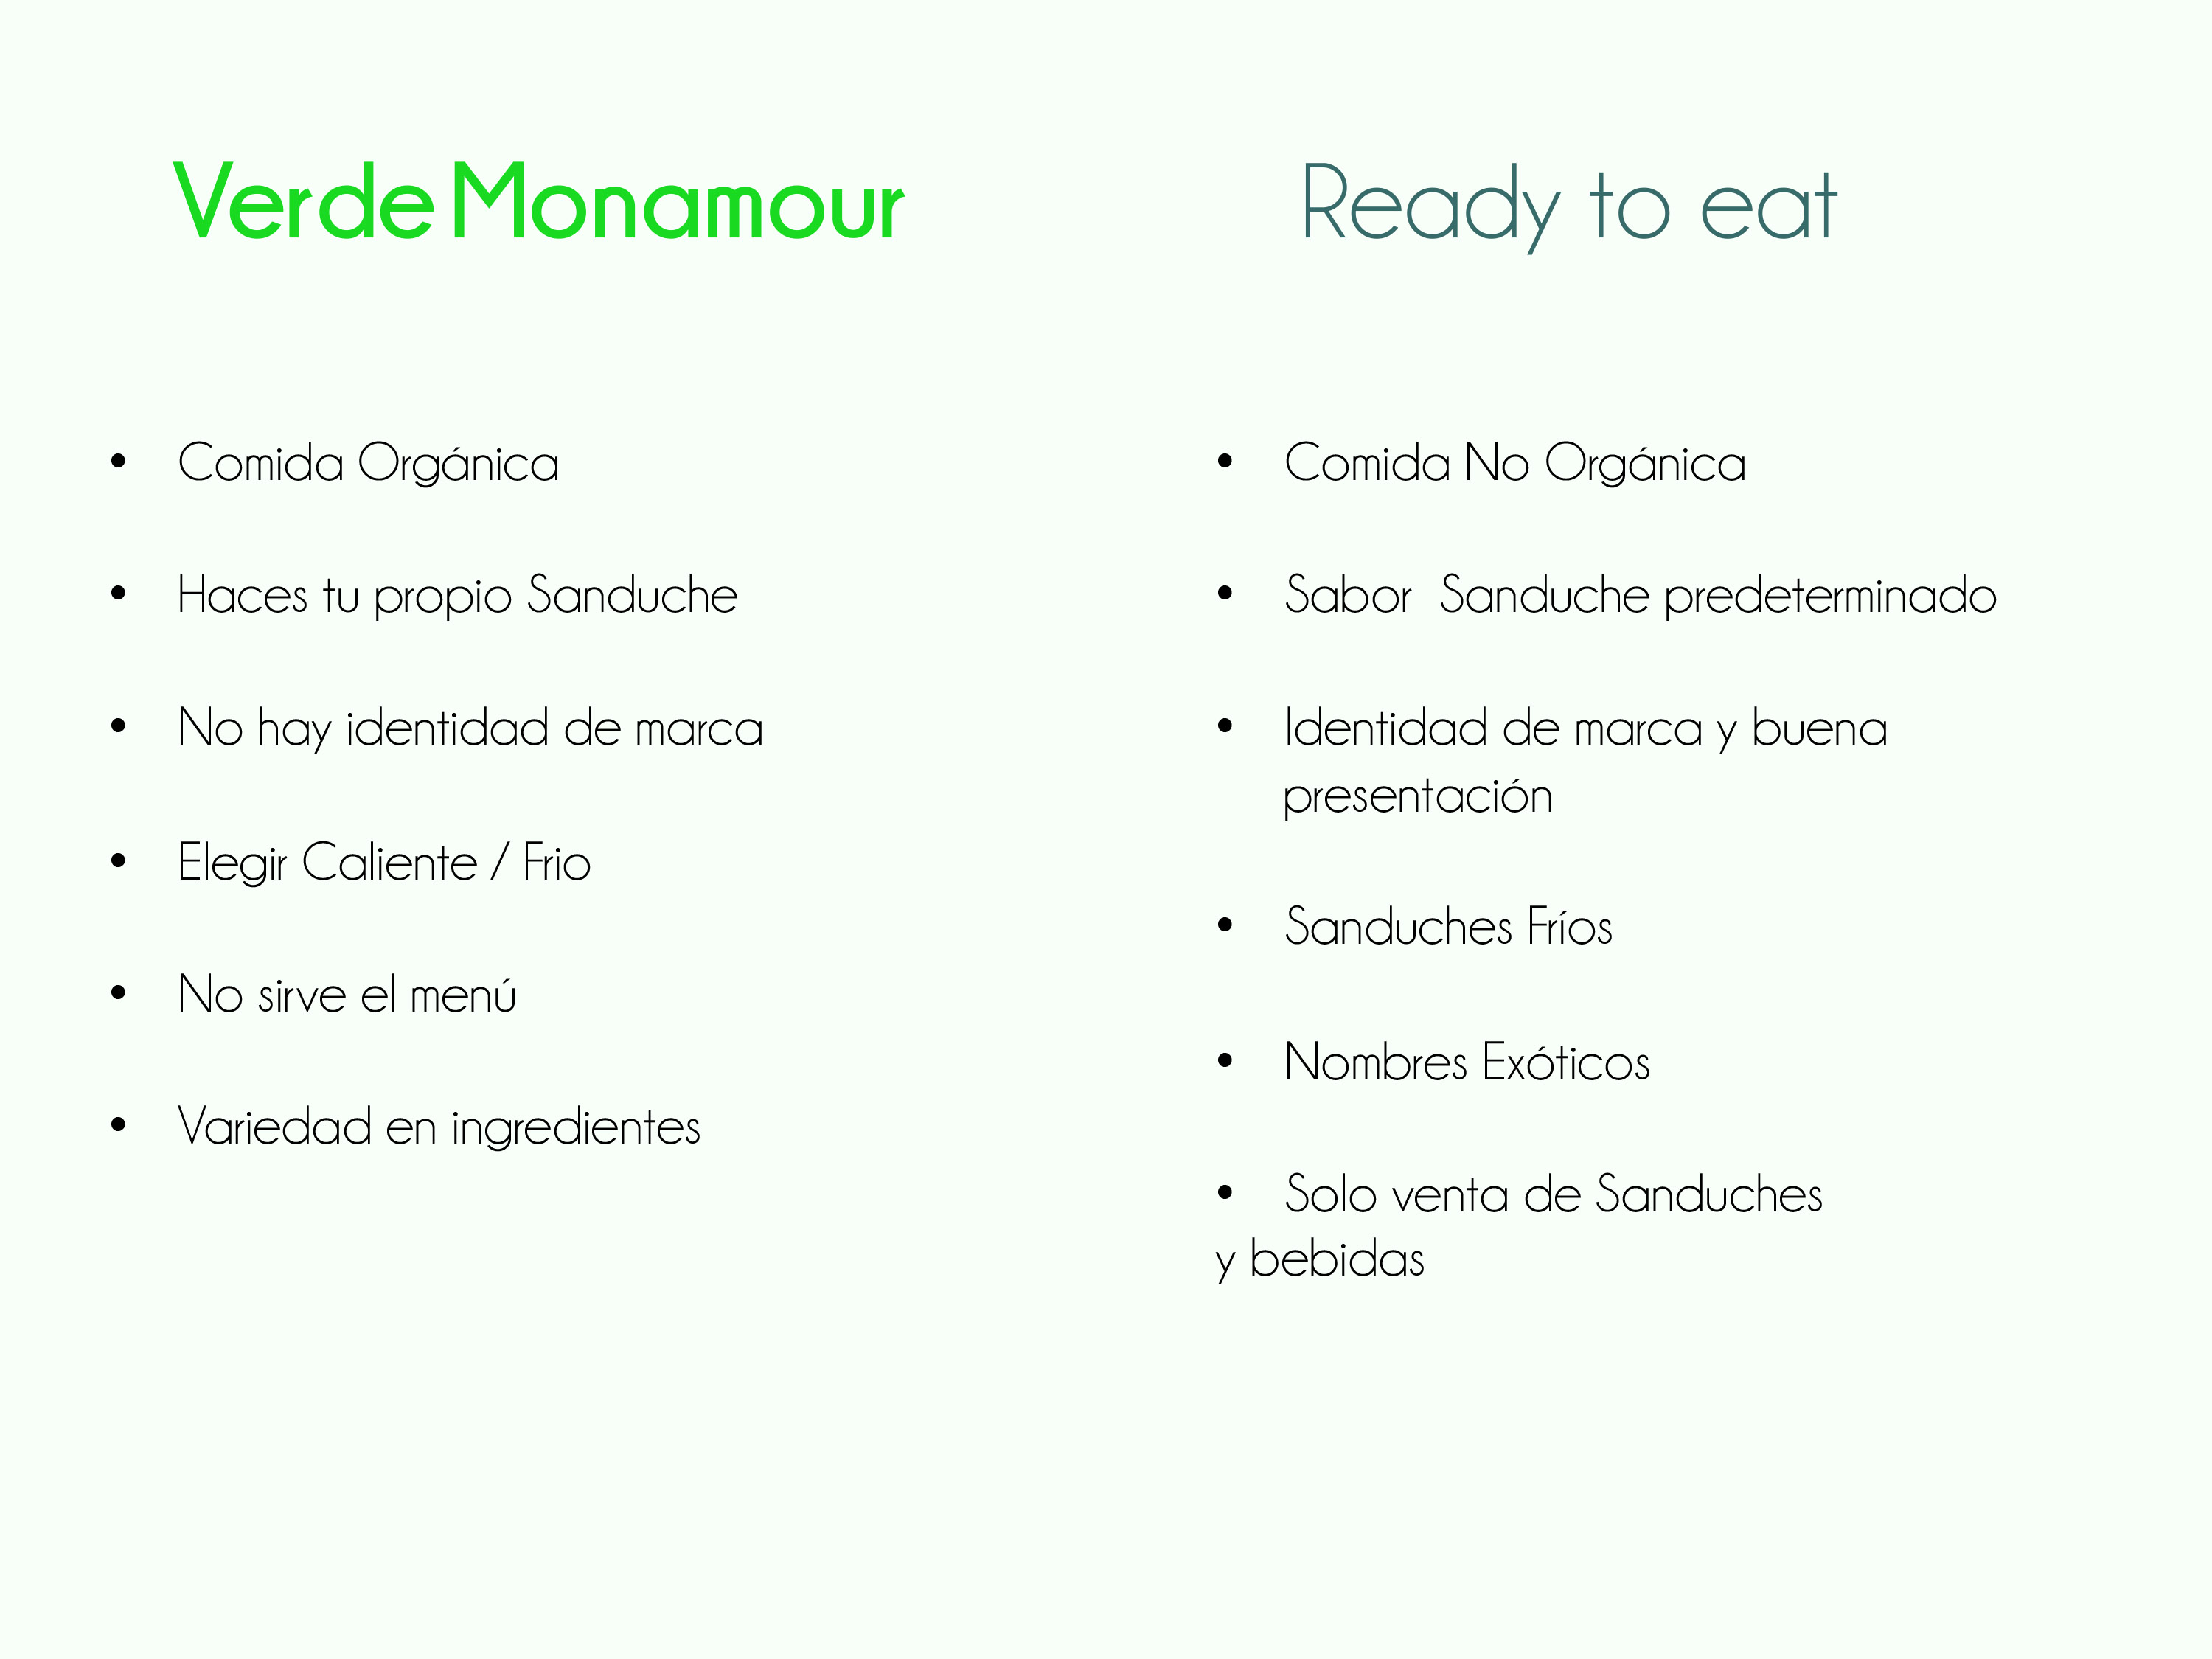 Verde Monamour - Ready to eat Conclusiones